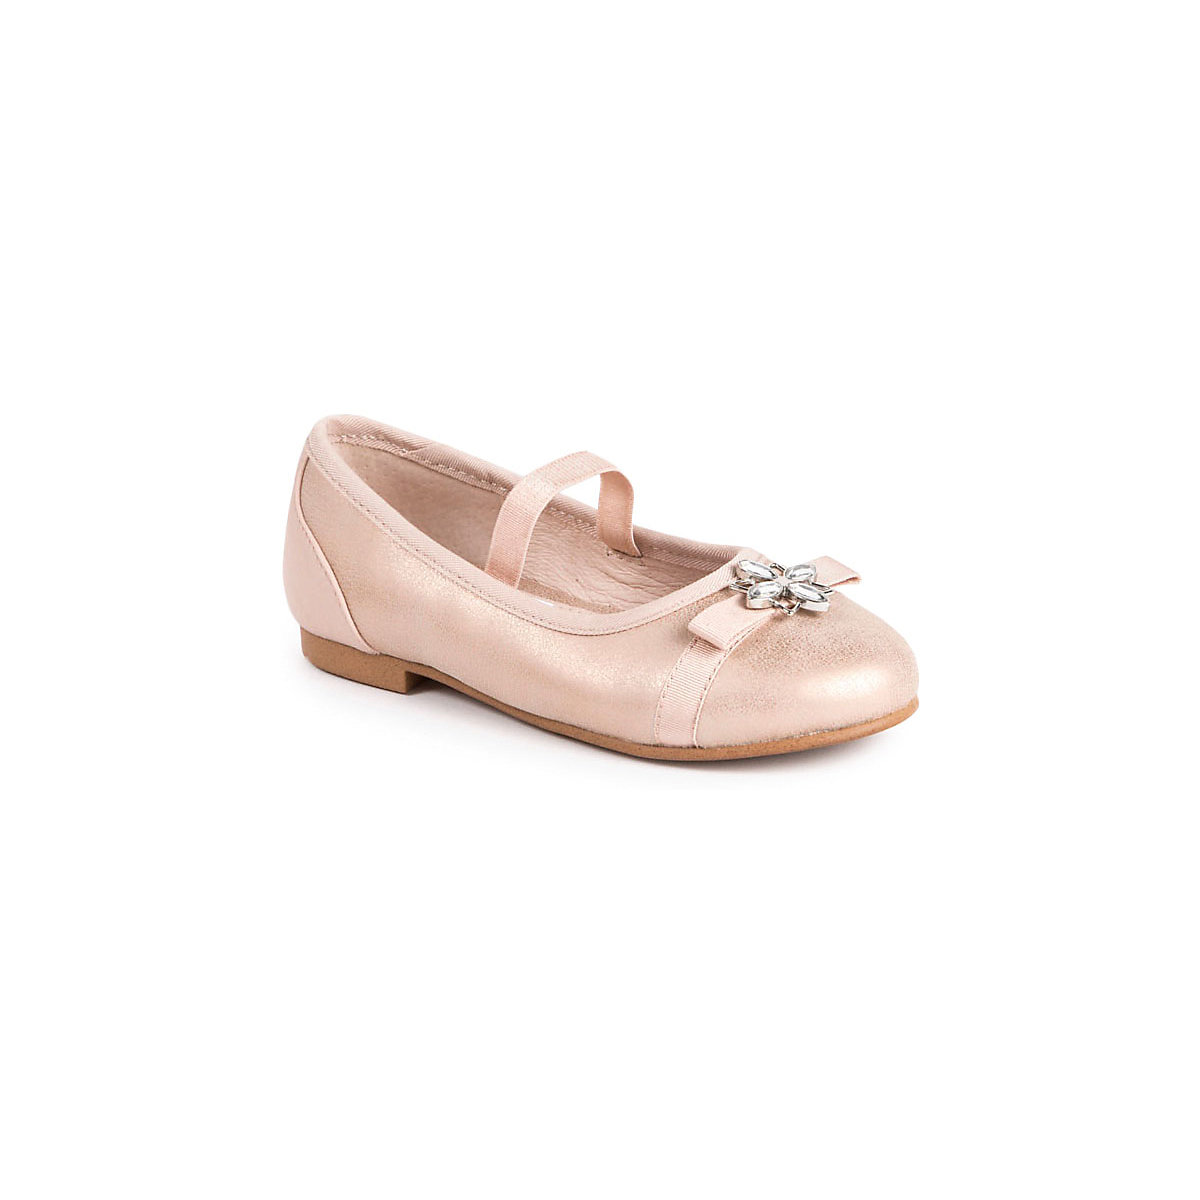 MAYORAL Children's Flats 10643006 pink summer ballet all-season elegant footwear Shoes for girls girl 2018 new women shiny flats fashion rivets basic mixed colors pointy toe ballerina ballet flat slip on women shoes b103